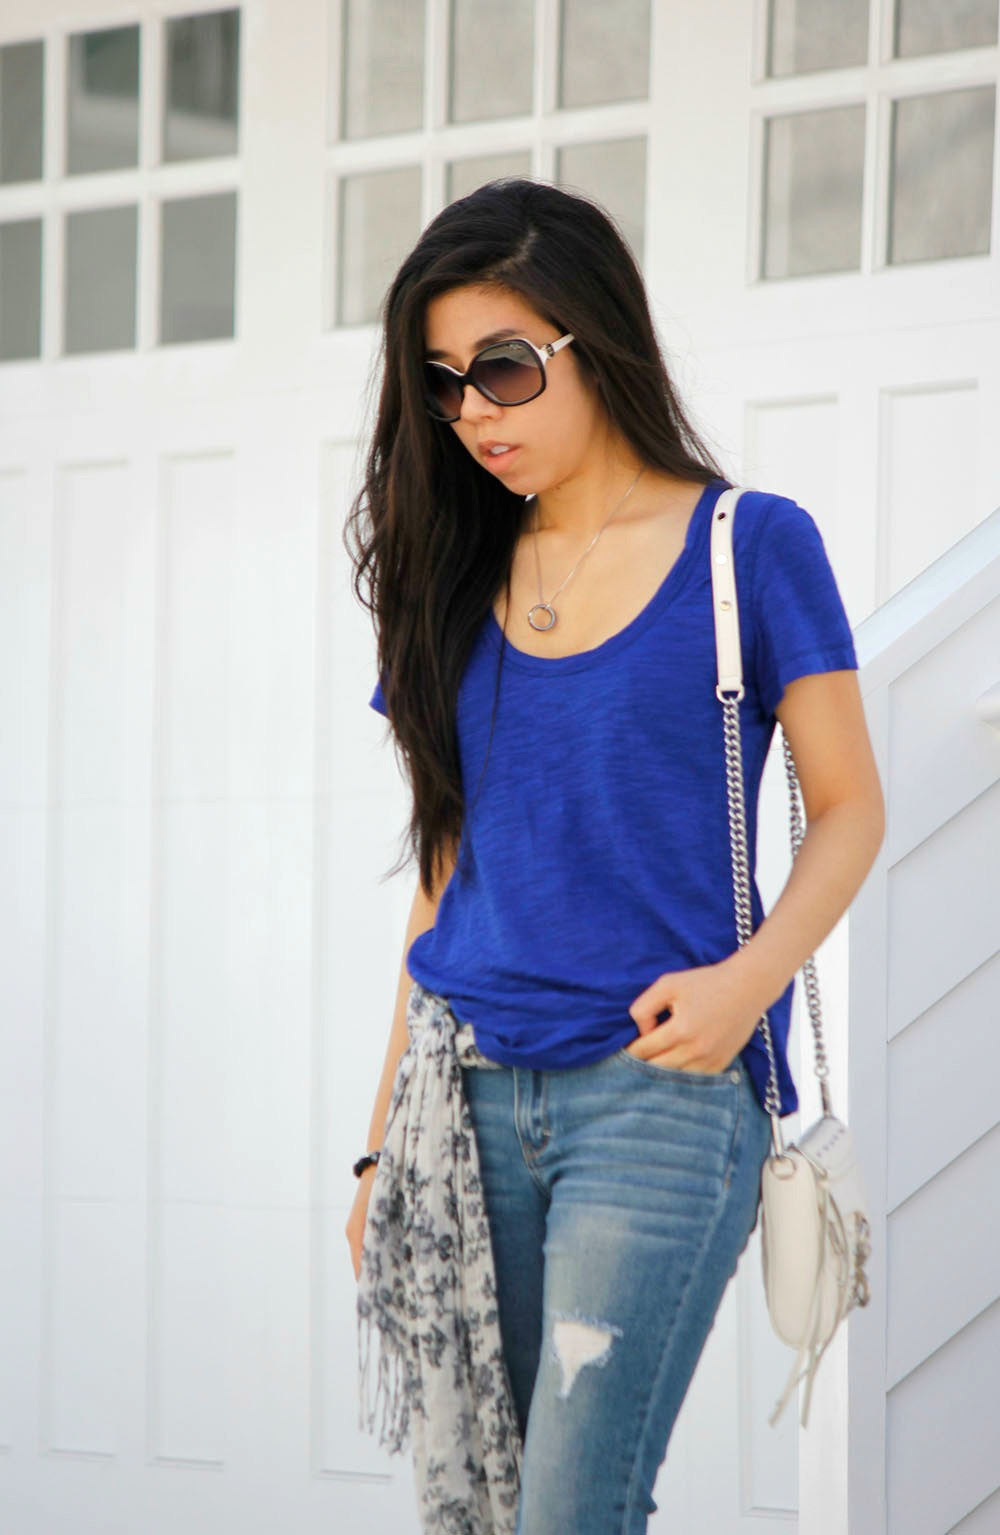 Scarf Around the Waist _ Top Half Tuck into Jeans _ Skinny Ripped Jeans Fashion _ Adrienne Nguyen _ Invictus